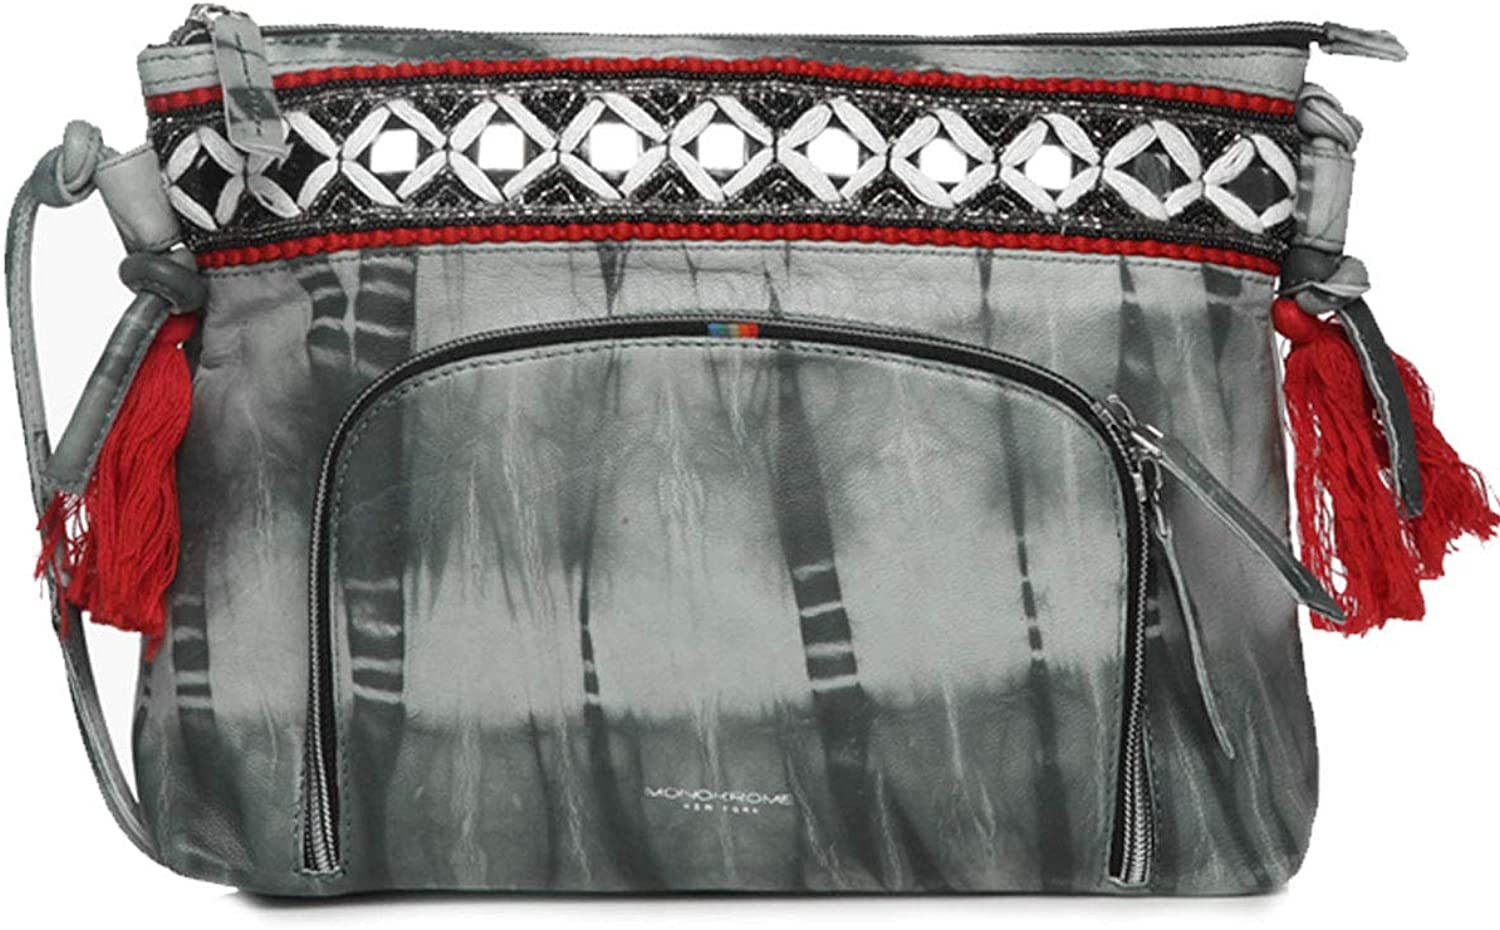 Handbags for Women tie & dye leather hand embroidered crossbody soft sling bag by Monokrome New York